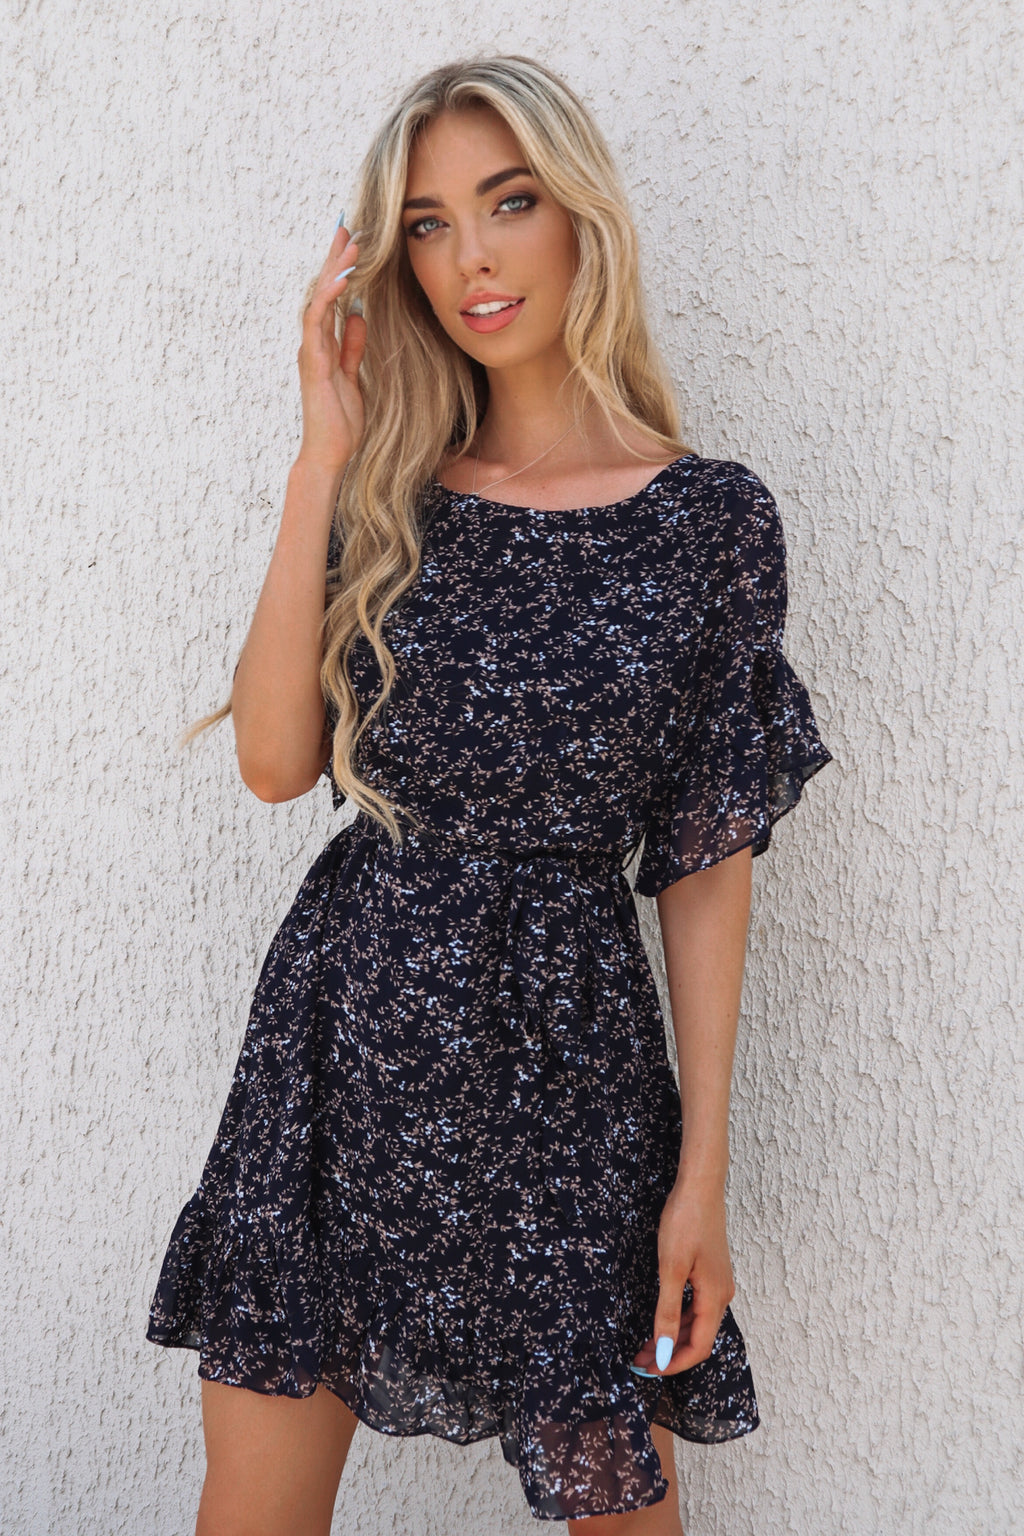 Sweet Pea Navy Dress - Runway Goddess